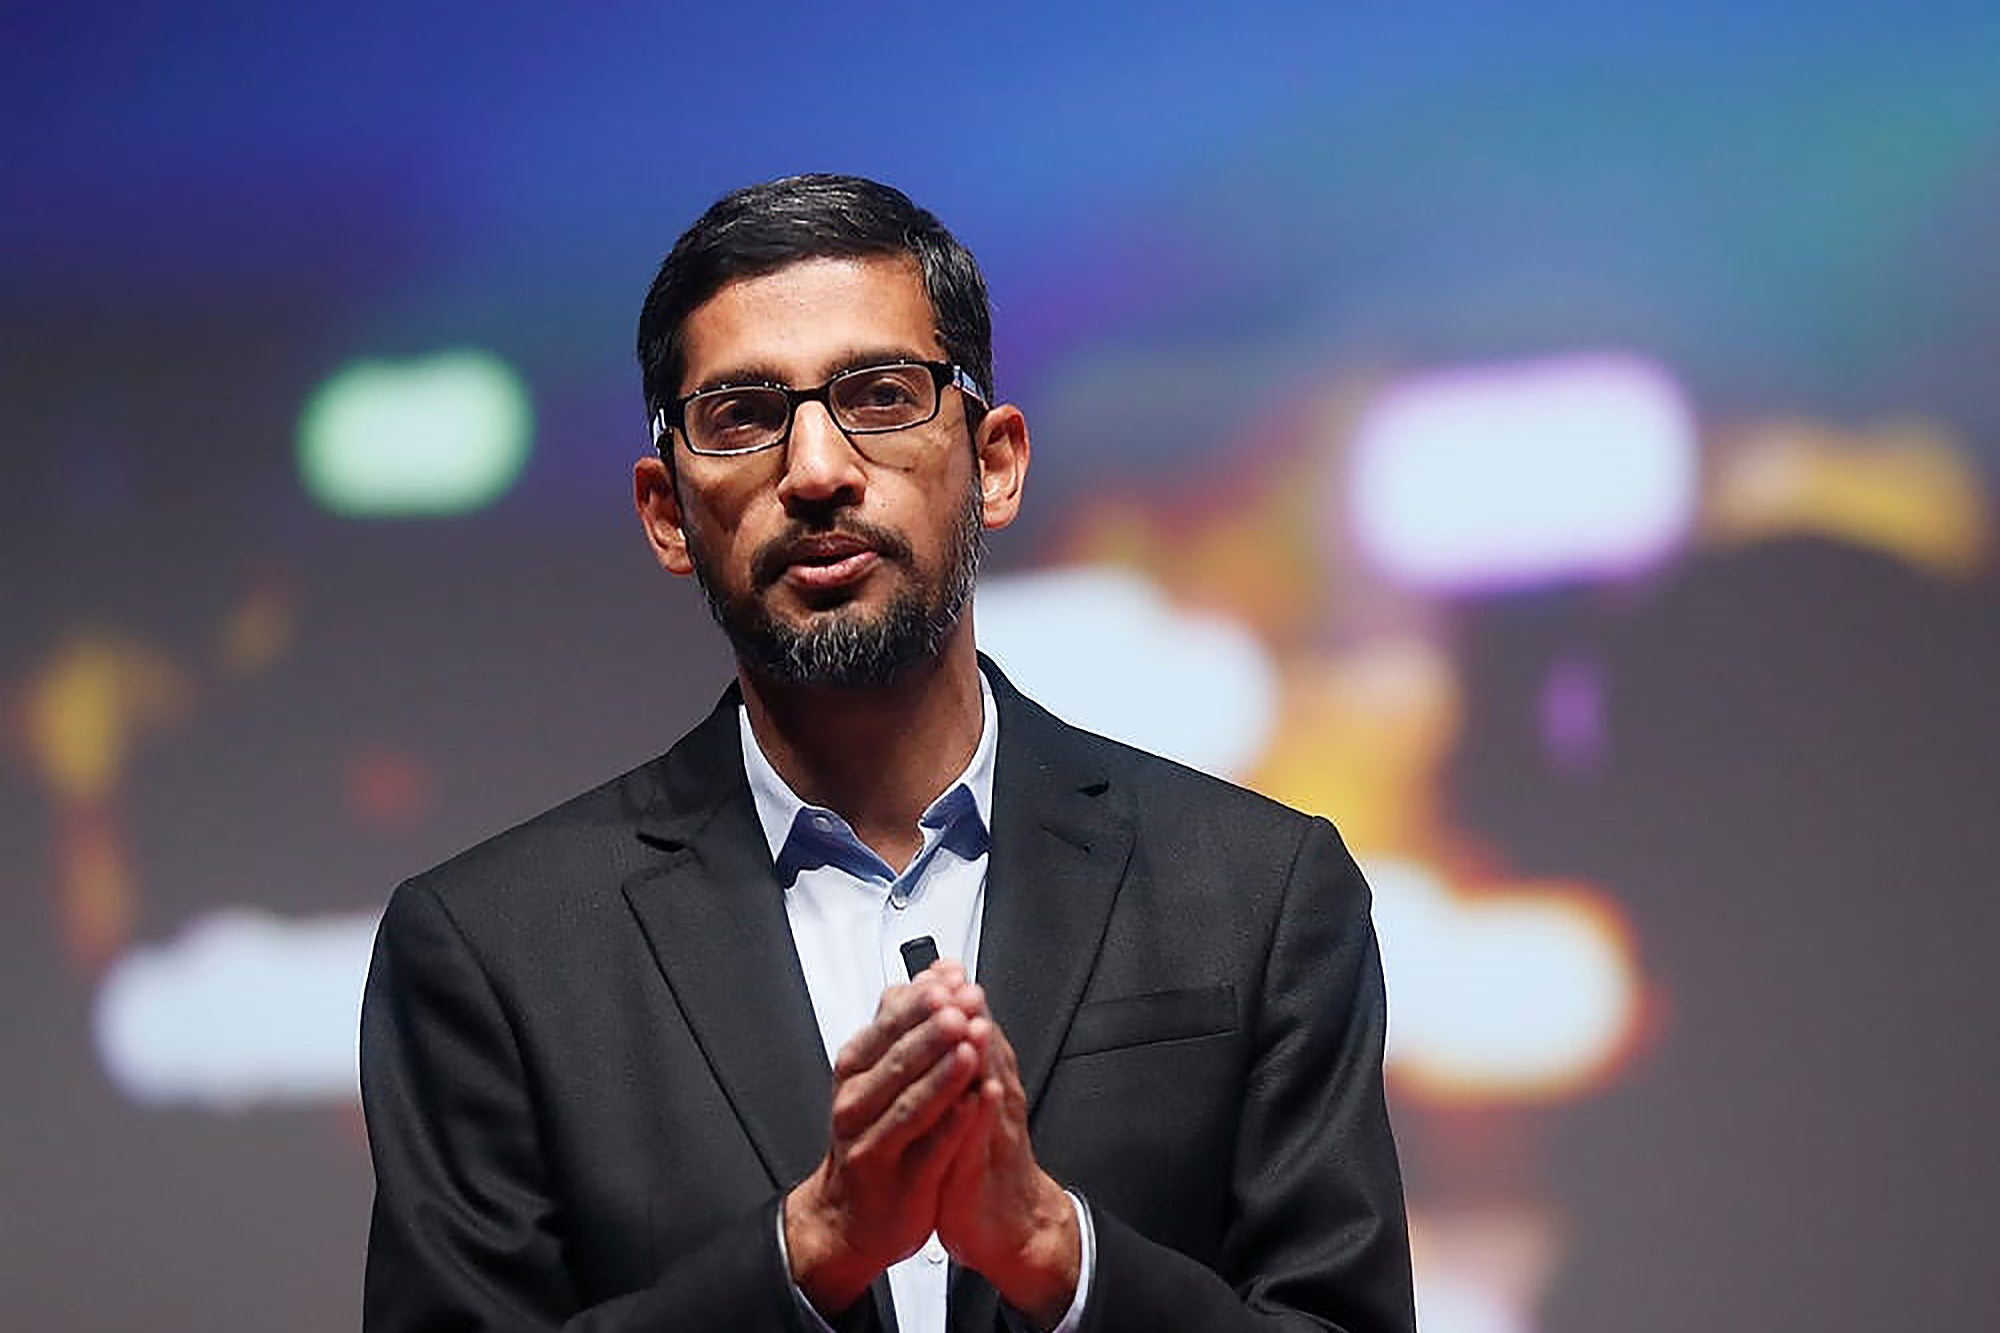 Google CEO Sundar Pichai Called for a Companywide Moment of Silence to Recognize George Floyd